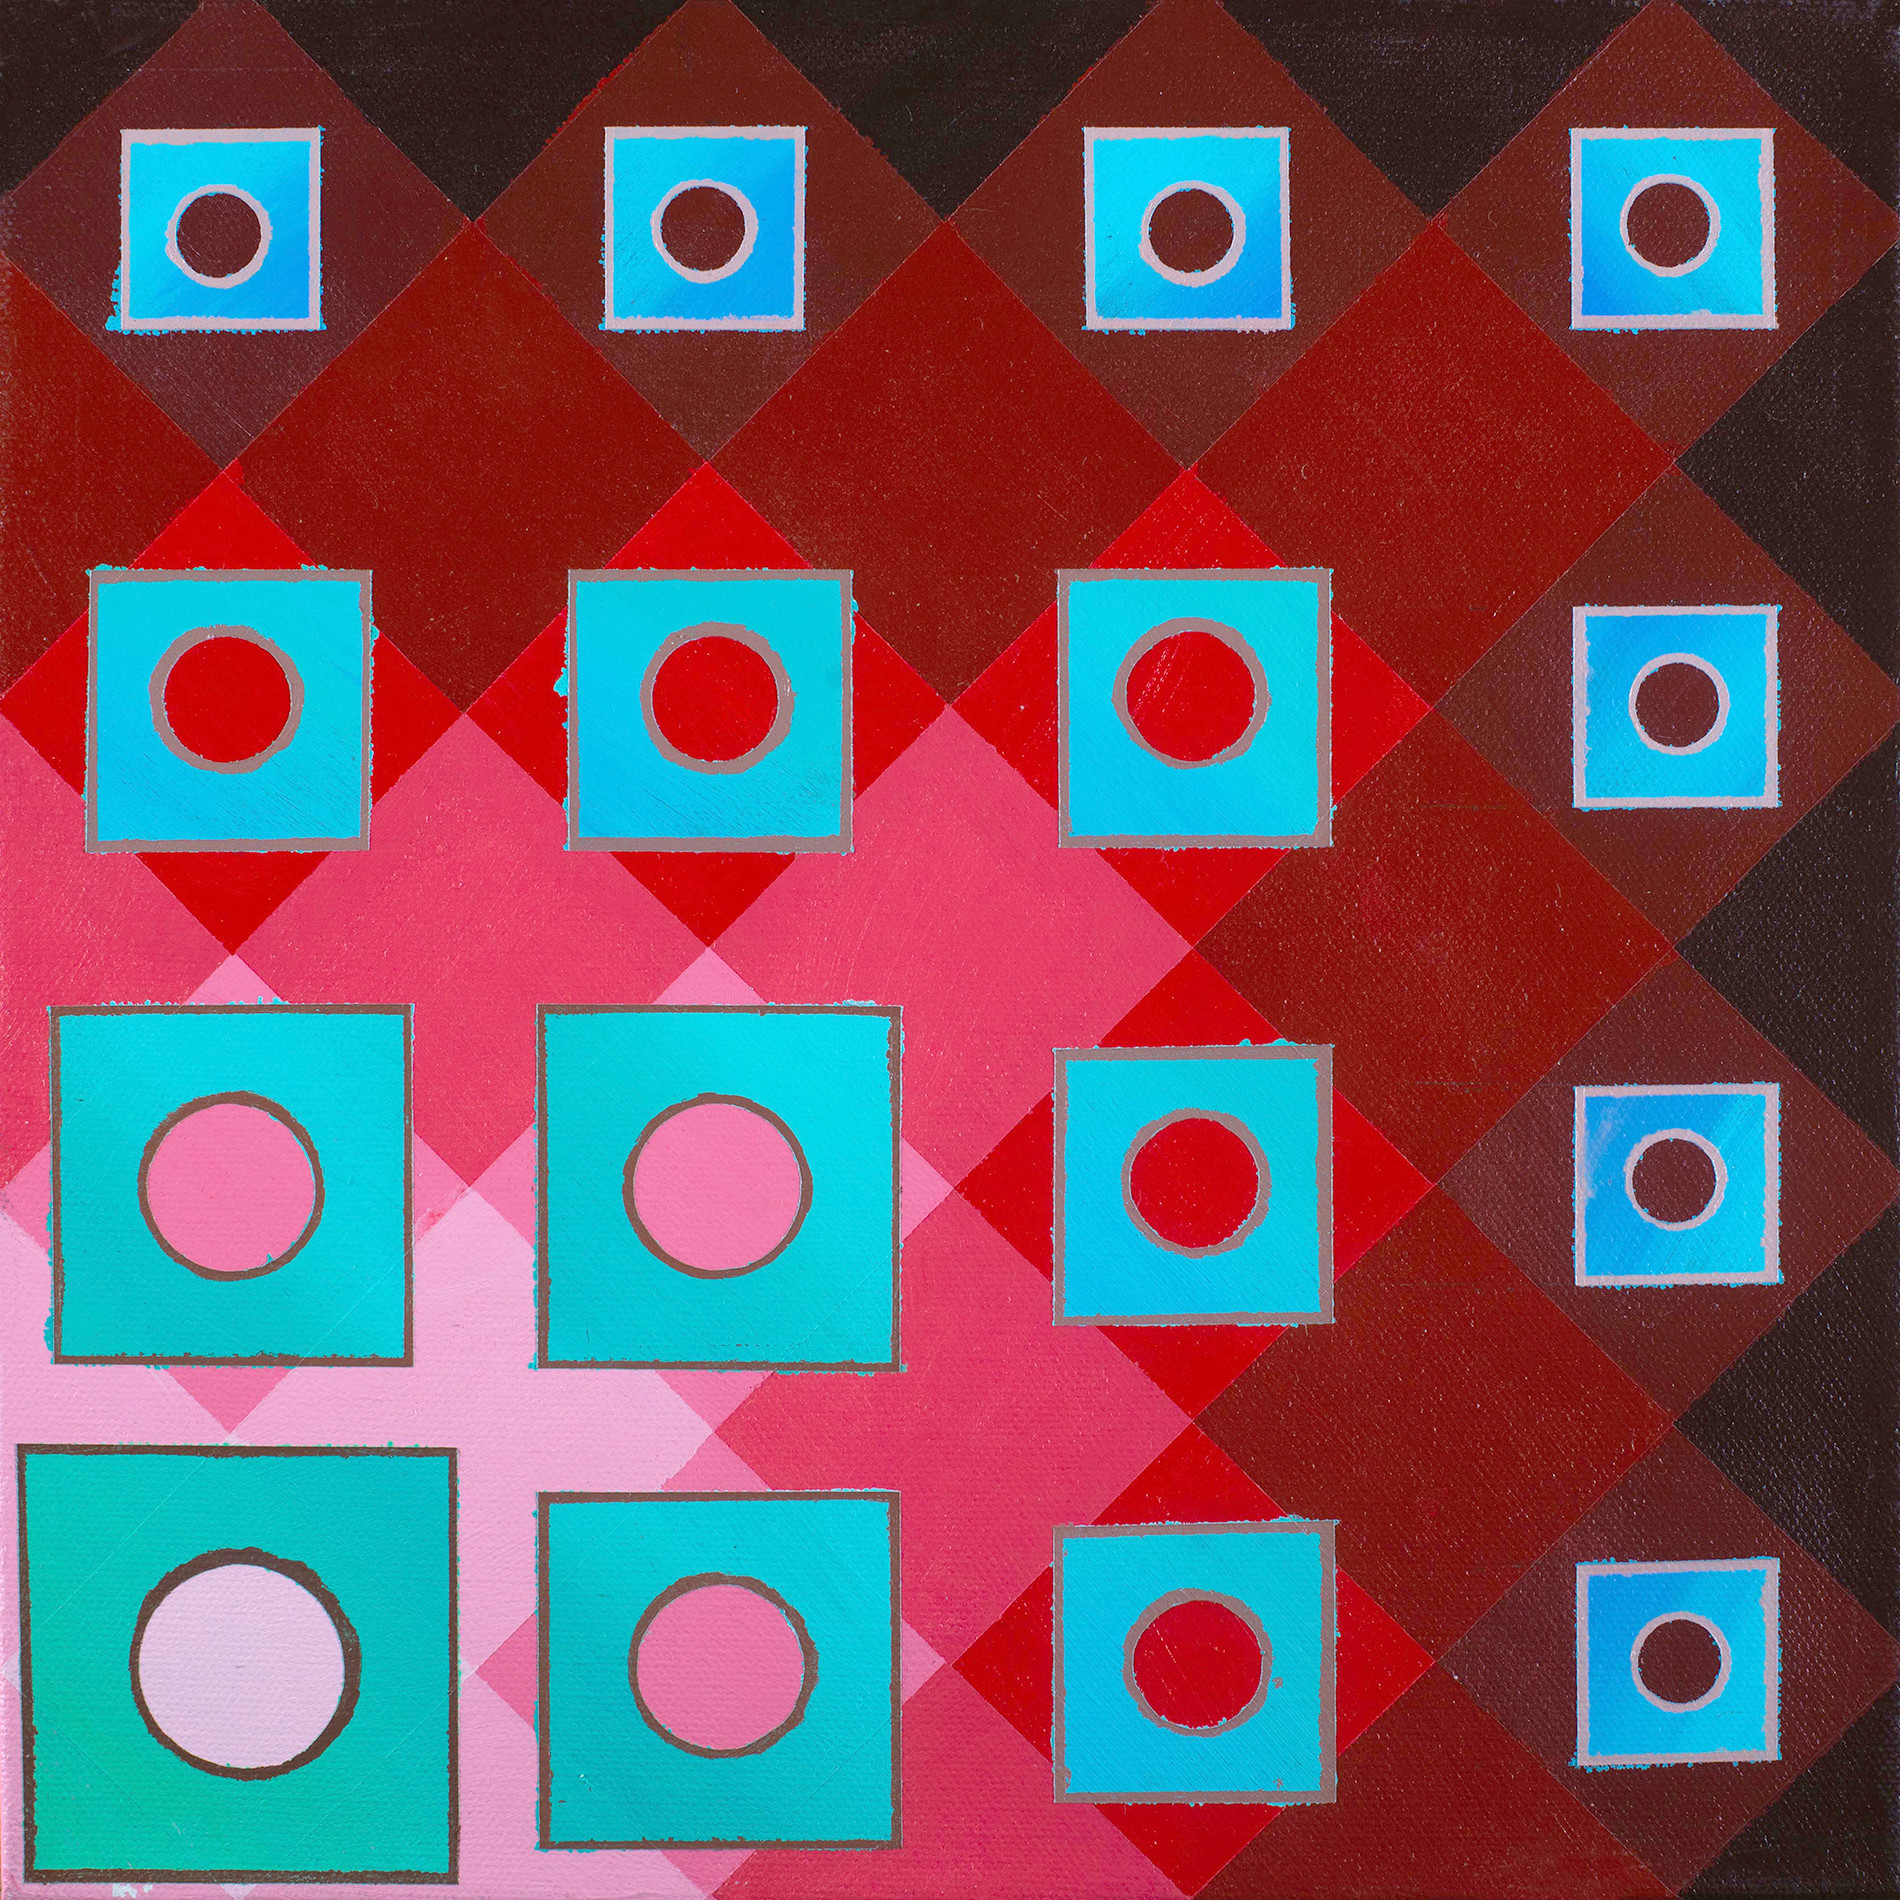 Fading Squares Over Reds